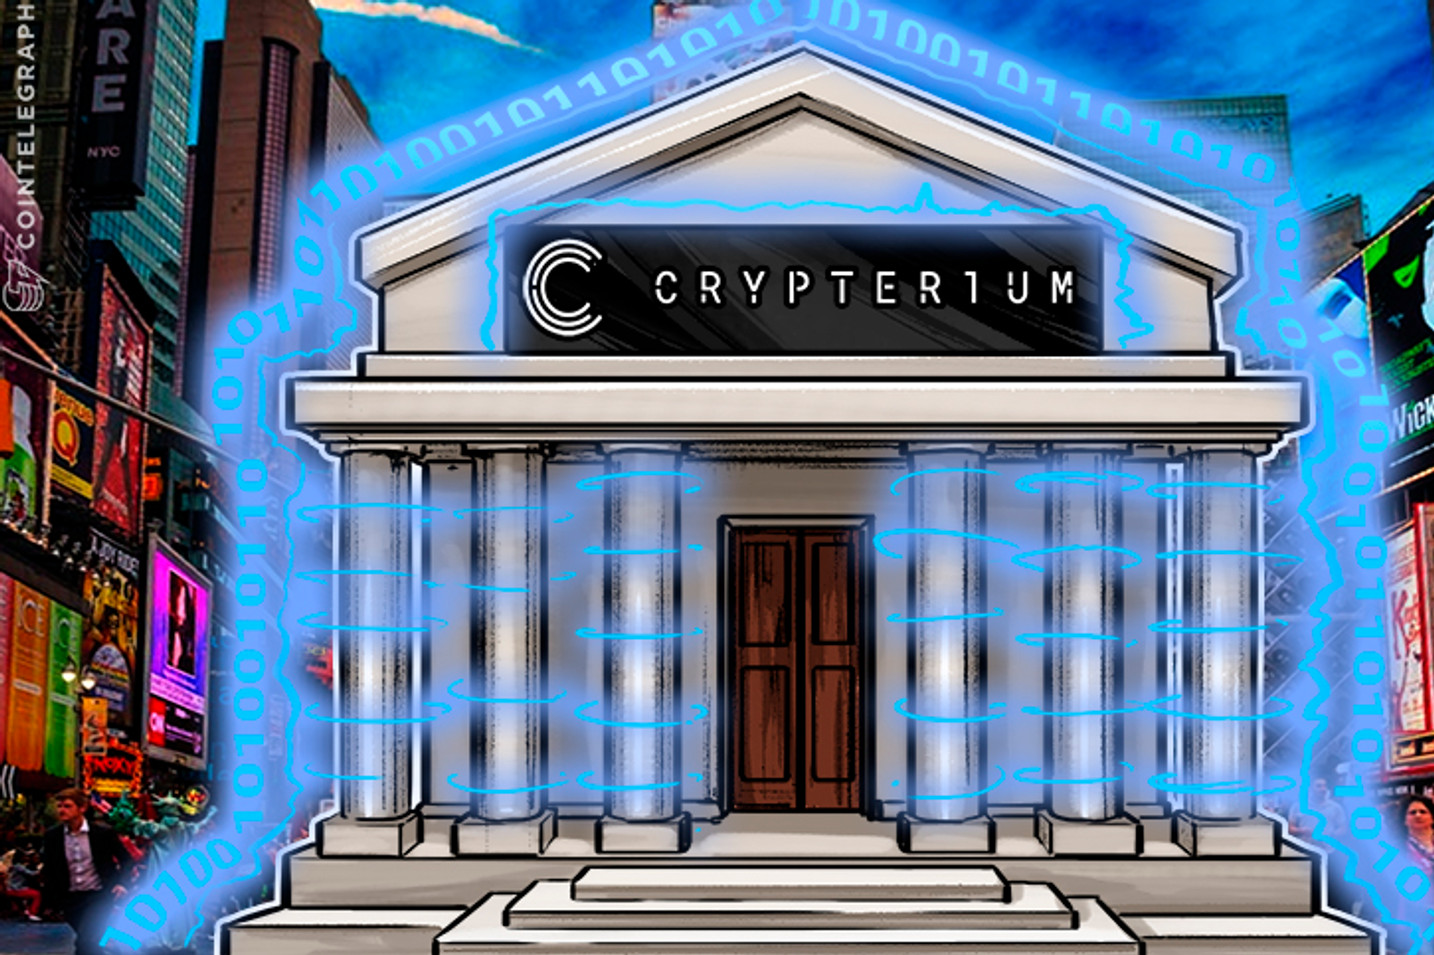 Can Blockchain-based Cryptobanks Overtake Centralized Competitors?